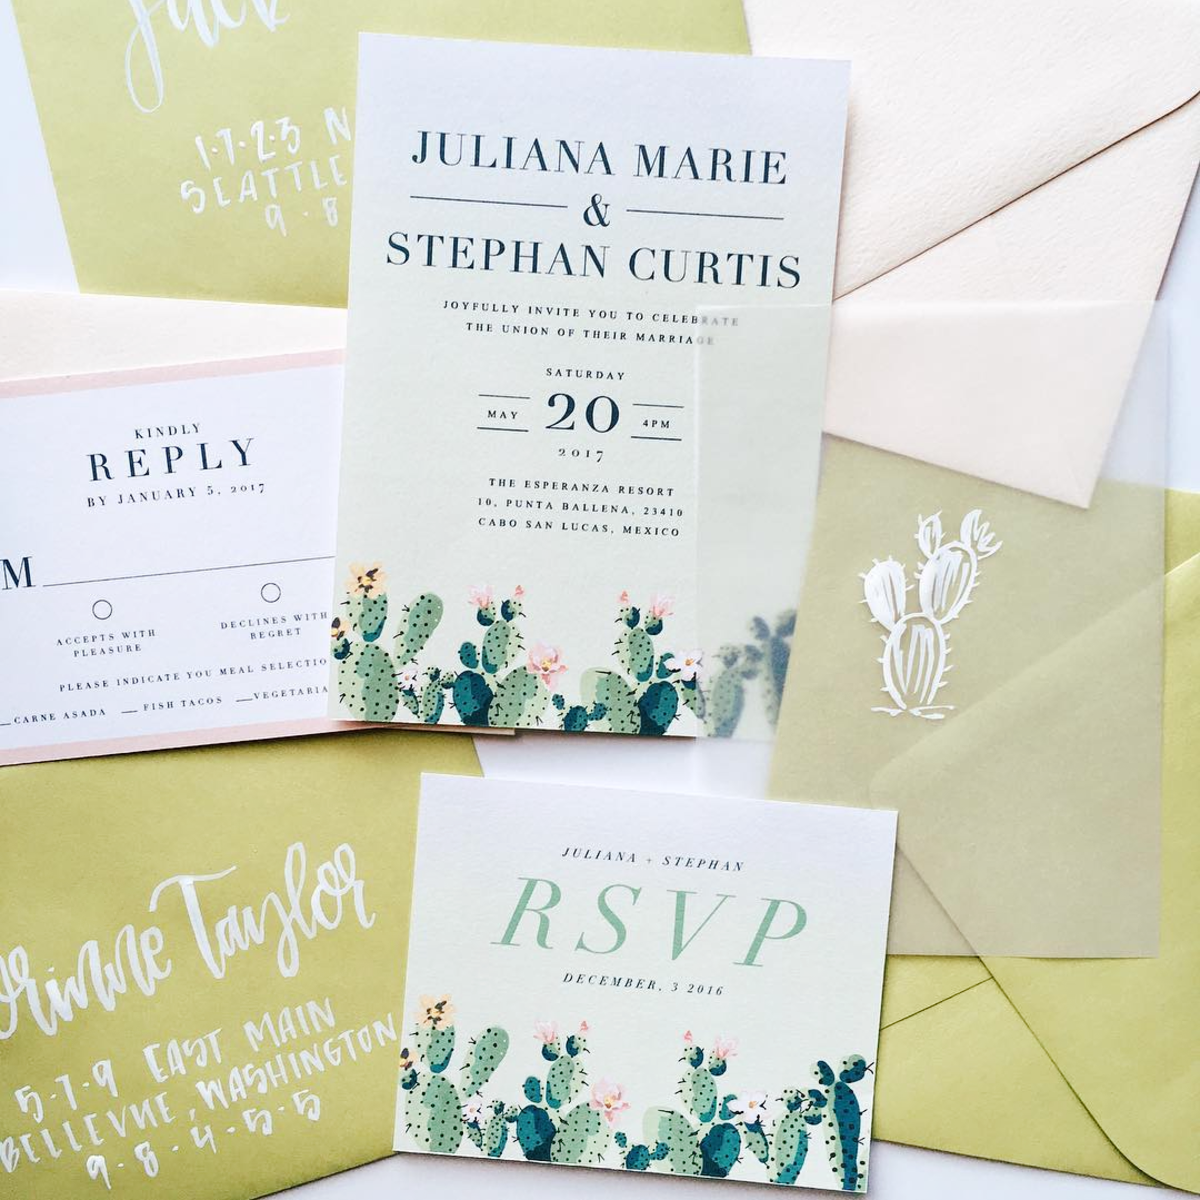 Vellum Cactus Wedding Invitation by Robinson Paperie